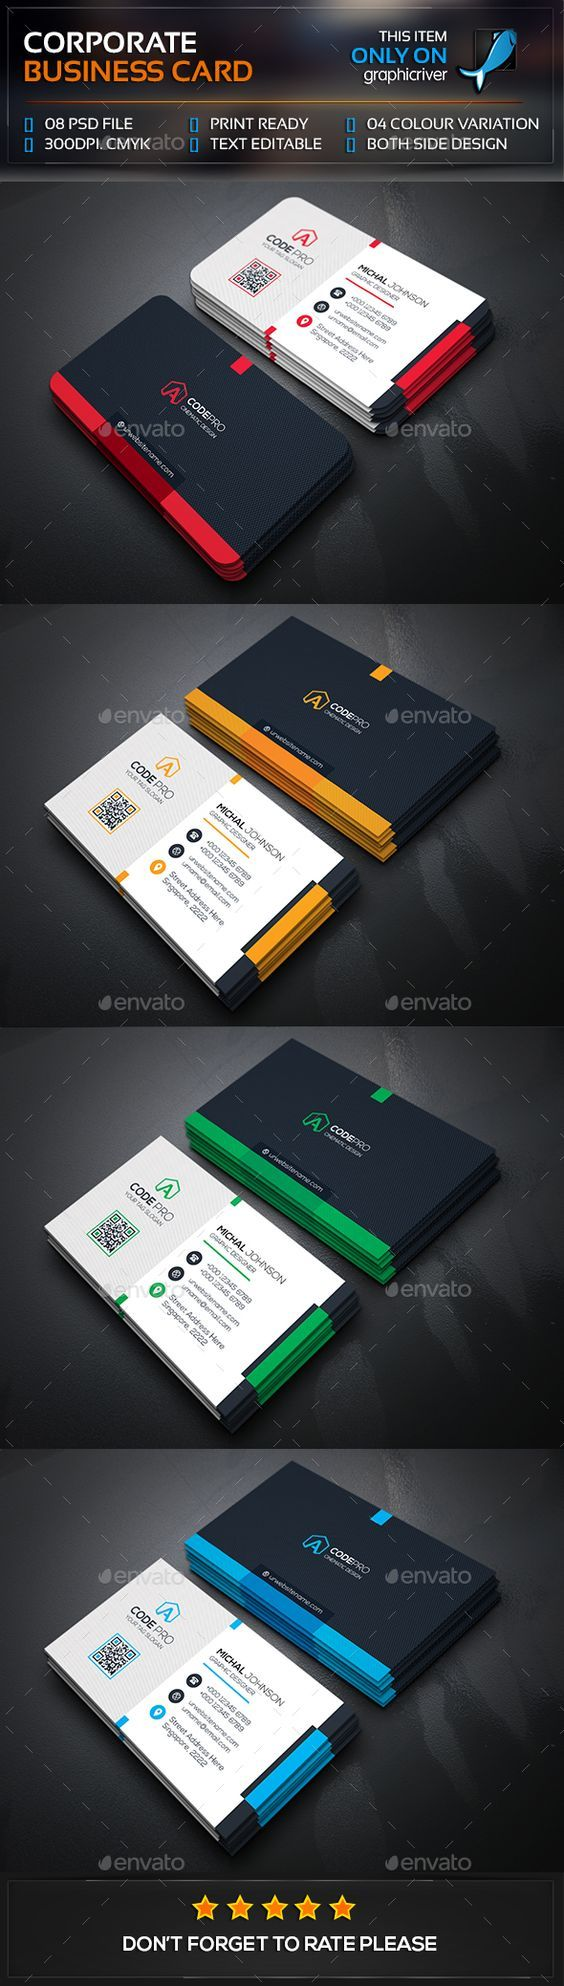 26 best Business Cards, Visiting Cards, Office Stationery images on ...